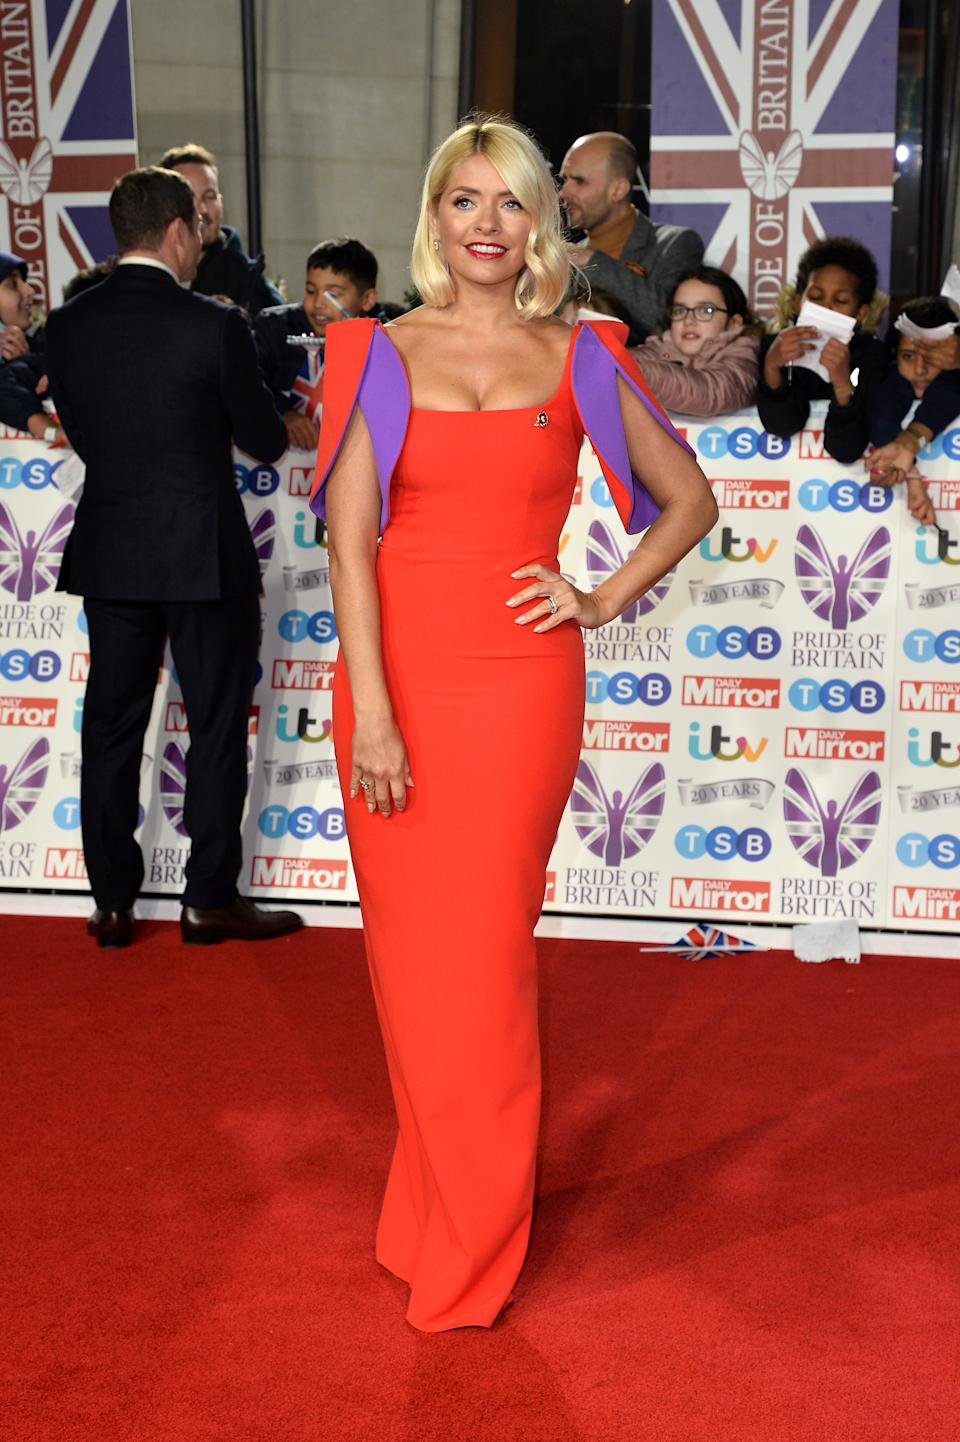 """Holly wore a statement red dress with purple accents by Safiyaa. The dress is <a href=""""https://fave.co/2BT8Nxa"""" rel=""""nofollow noopener"""" target=""""_blank"""" data-ylk=""""slk:available to buy for £1,095"""" class=""""link rapid-noclick-resp""""><strong>available to buy for £1,095</strong></a>. <em>[Photo: Getty]</em>"""